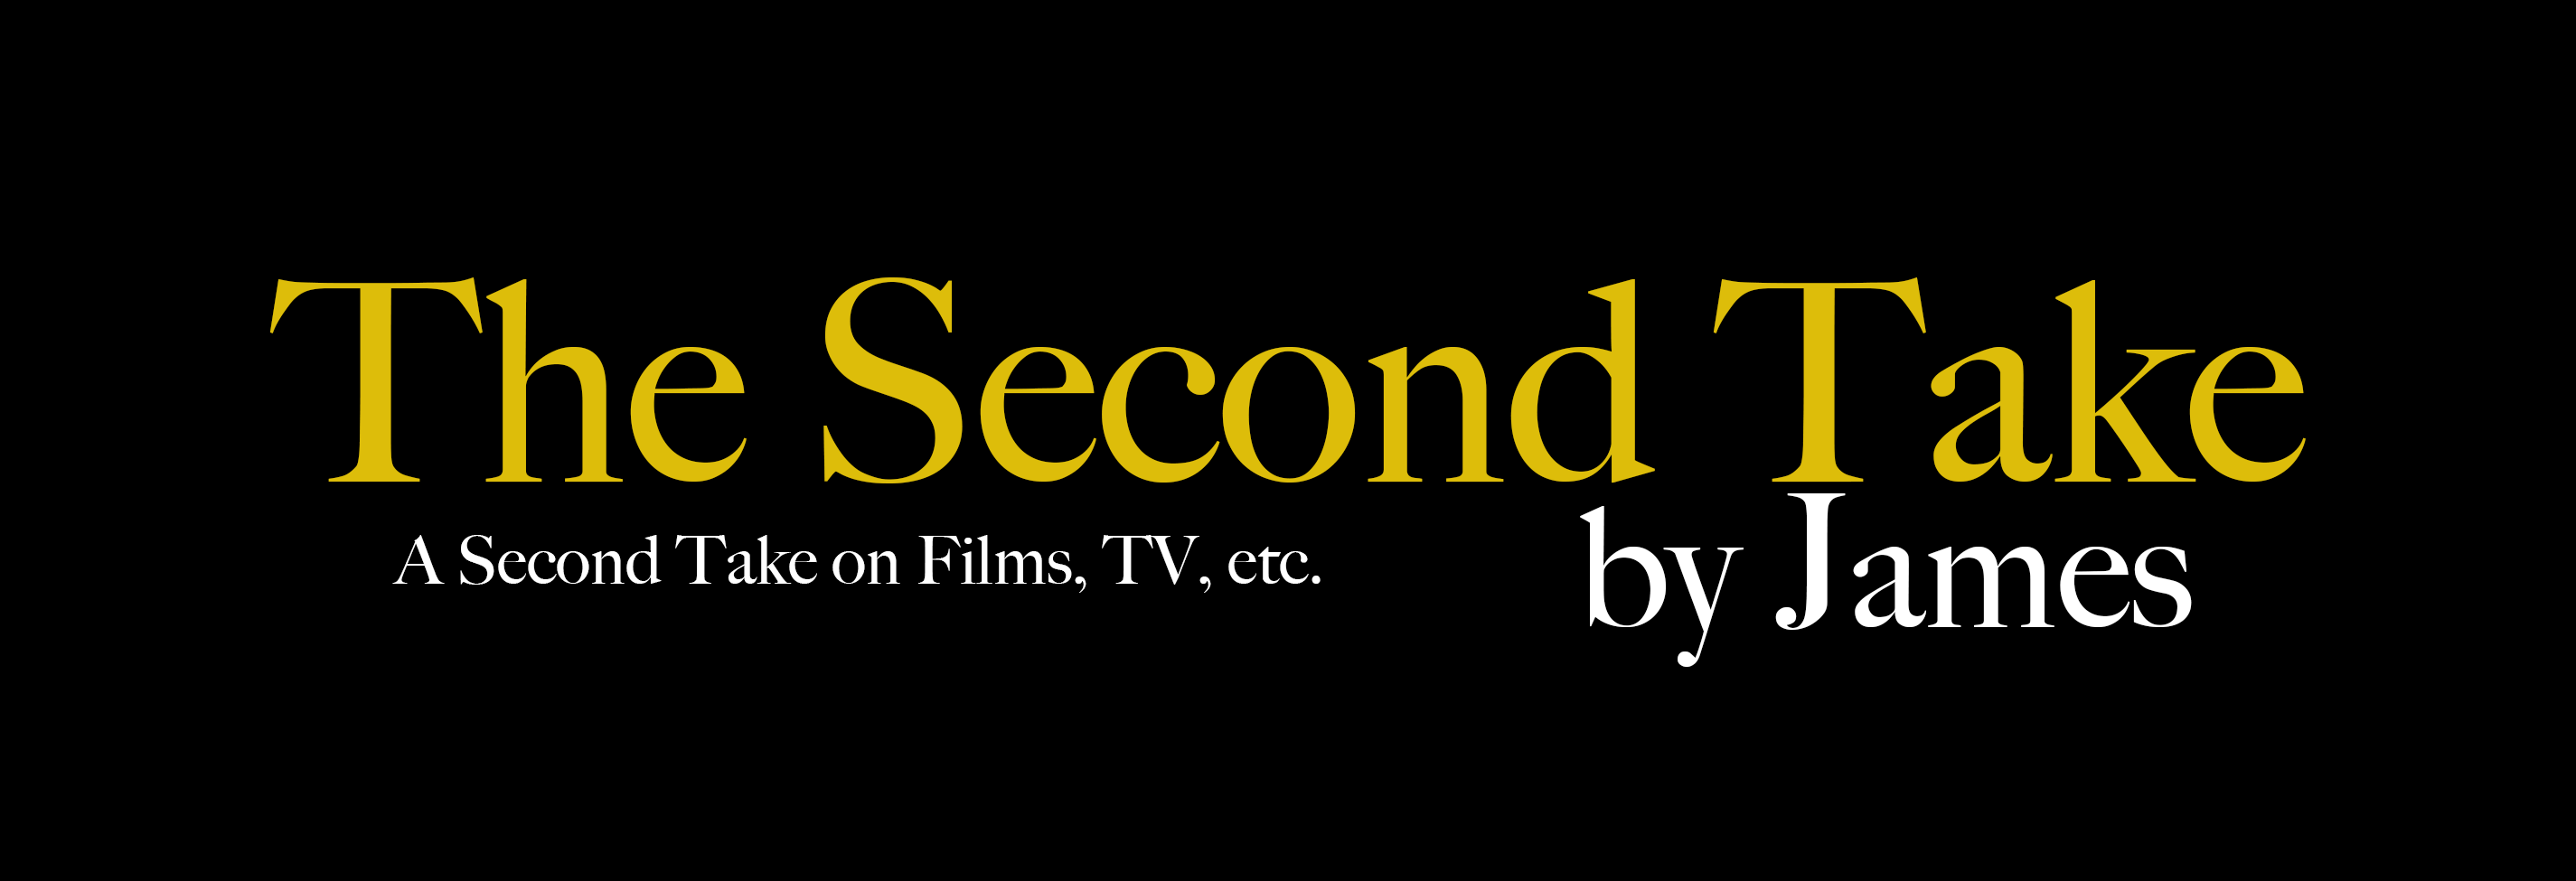 The Second Take